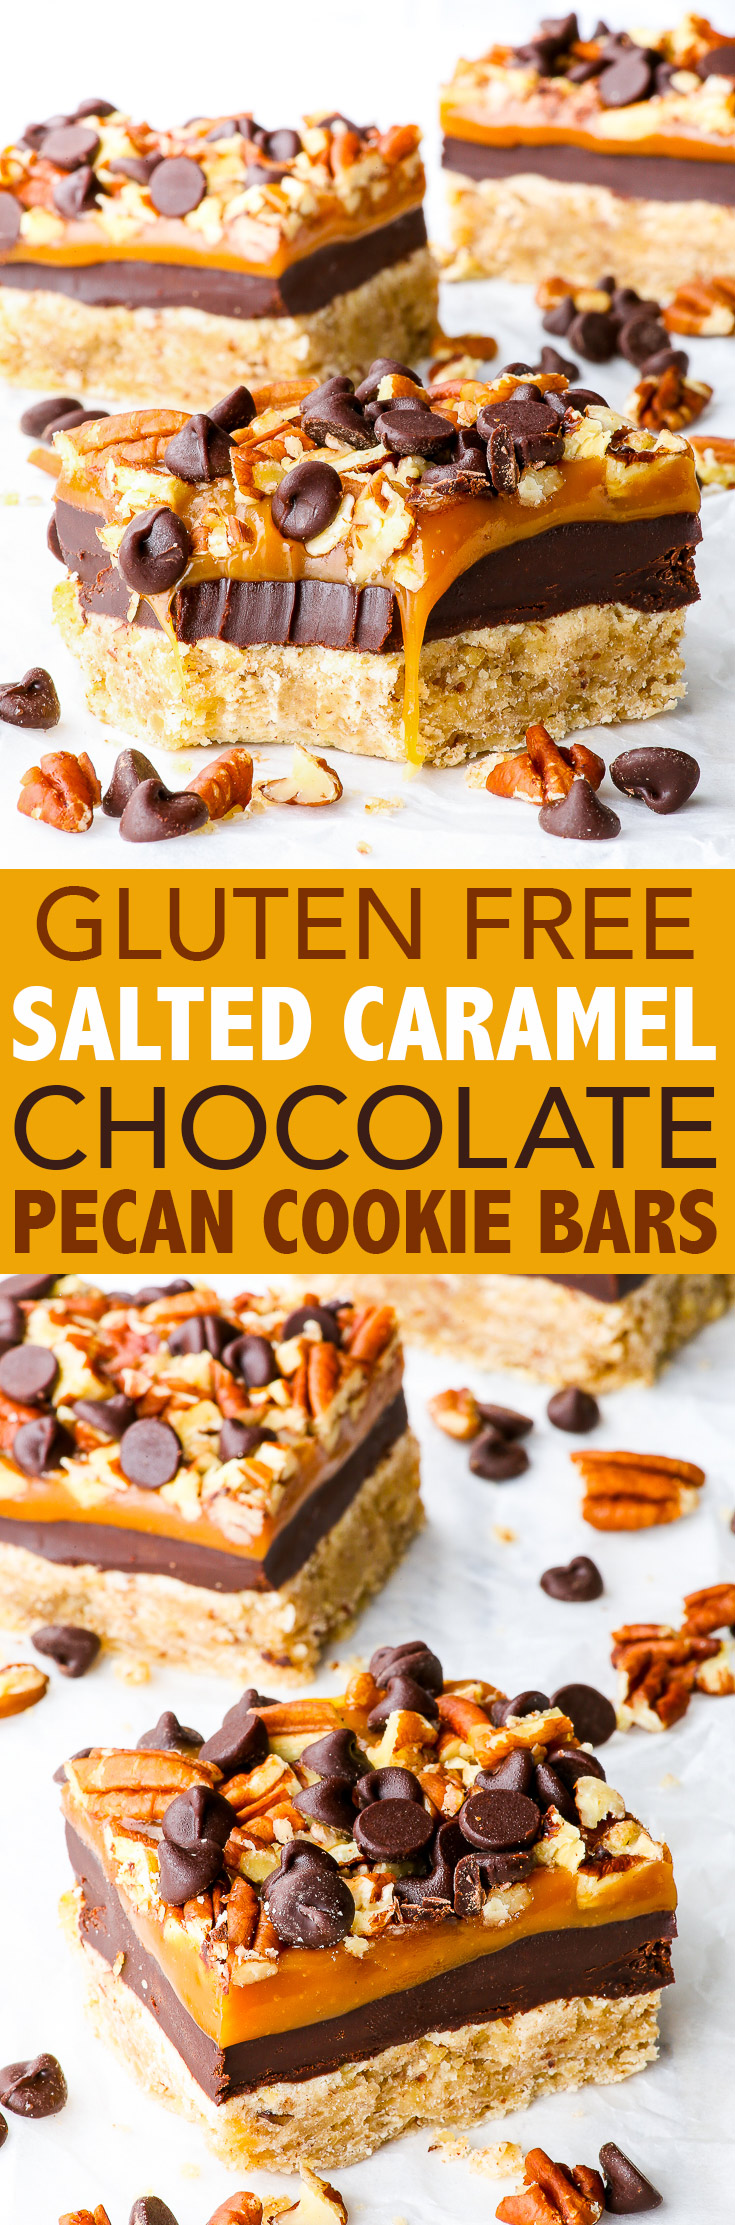 Salted Caramel and Chocolate Pecan Cookie Bars {gluten, peanut & soy free} - These gluten free salted caramel chocolate cookie bars will take your breath away and leave you craving more. There's four layers: pecan cookie, chocolate ganache, salted caramel and chopped pecans + chocolate chips. Perfect gluten free fall dessert. #saltedcaramel #cookiebars #chocolatechipcookies #glutenfree